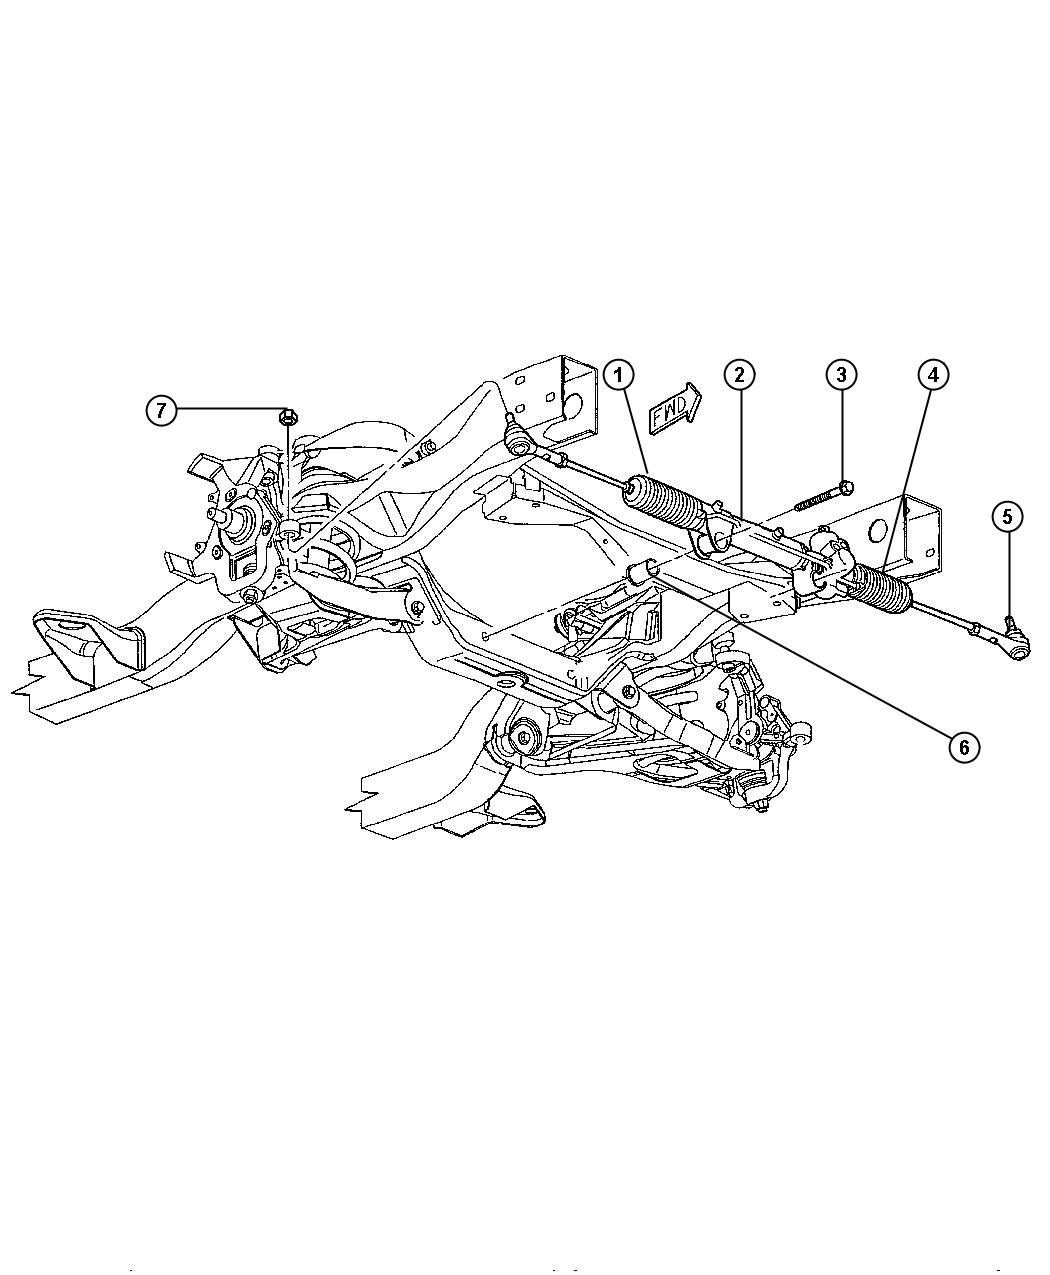 2001 Dodge Ram 1500 Speaker Wire Diagram